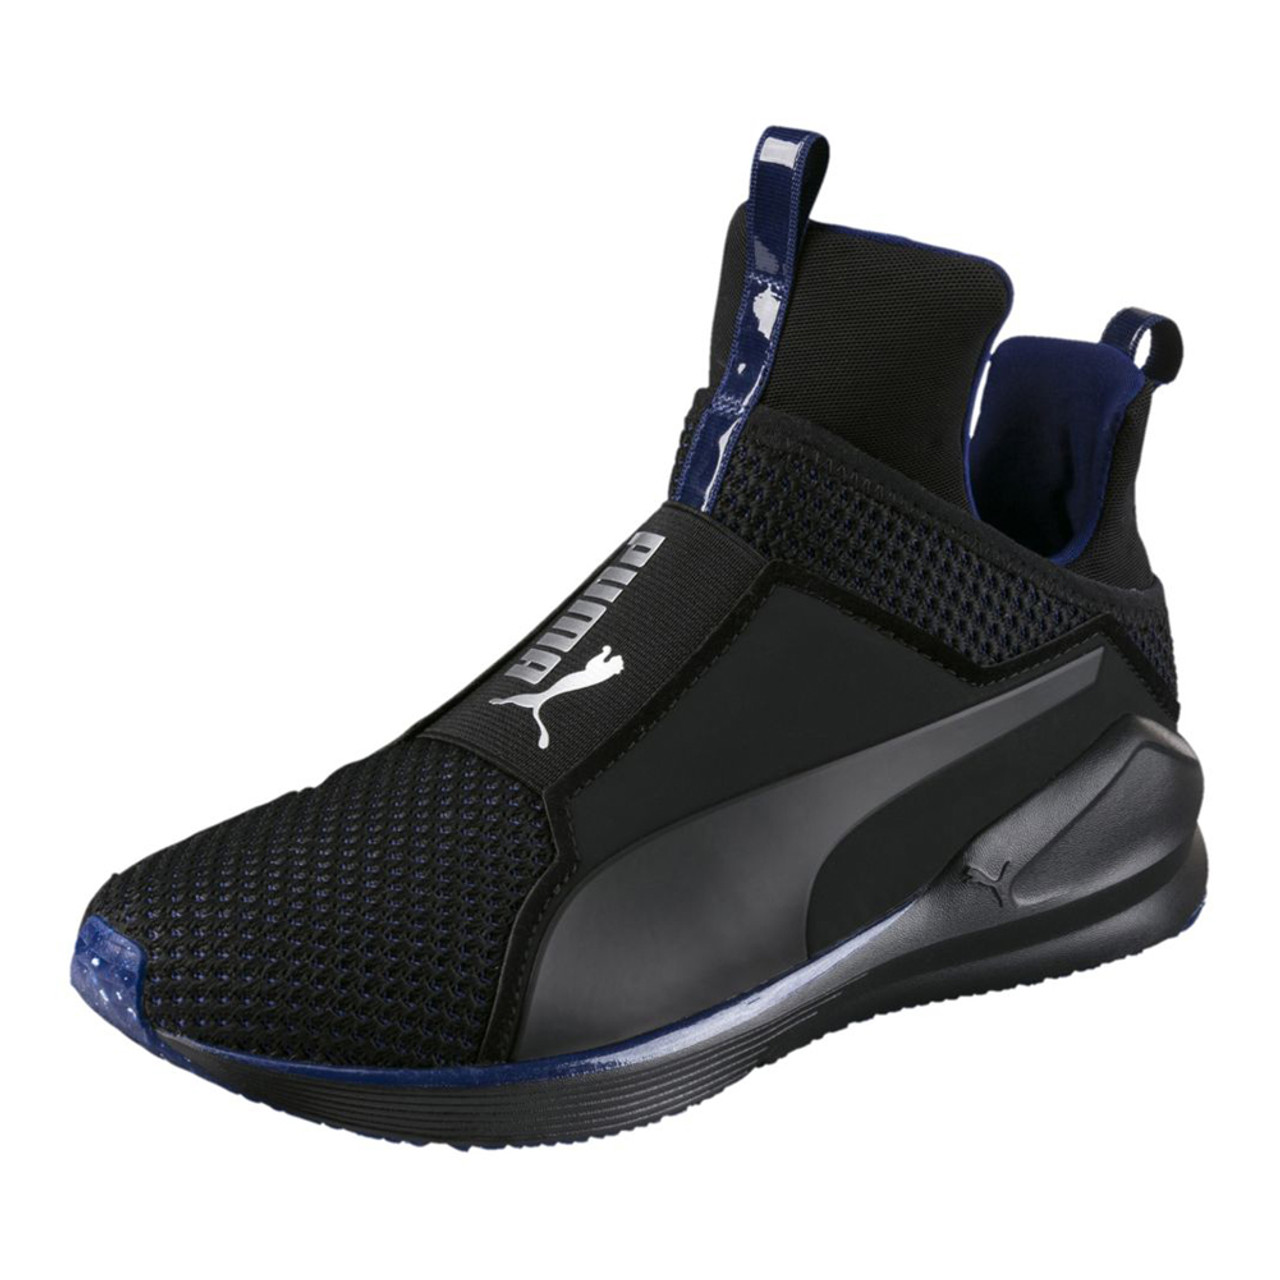 6dd690ae7181f1 Puma Women s Fierce Velvet VR Cross Trainer Black Blue - Shop now   Shoolu.